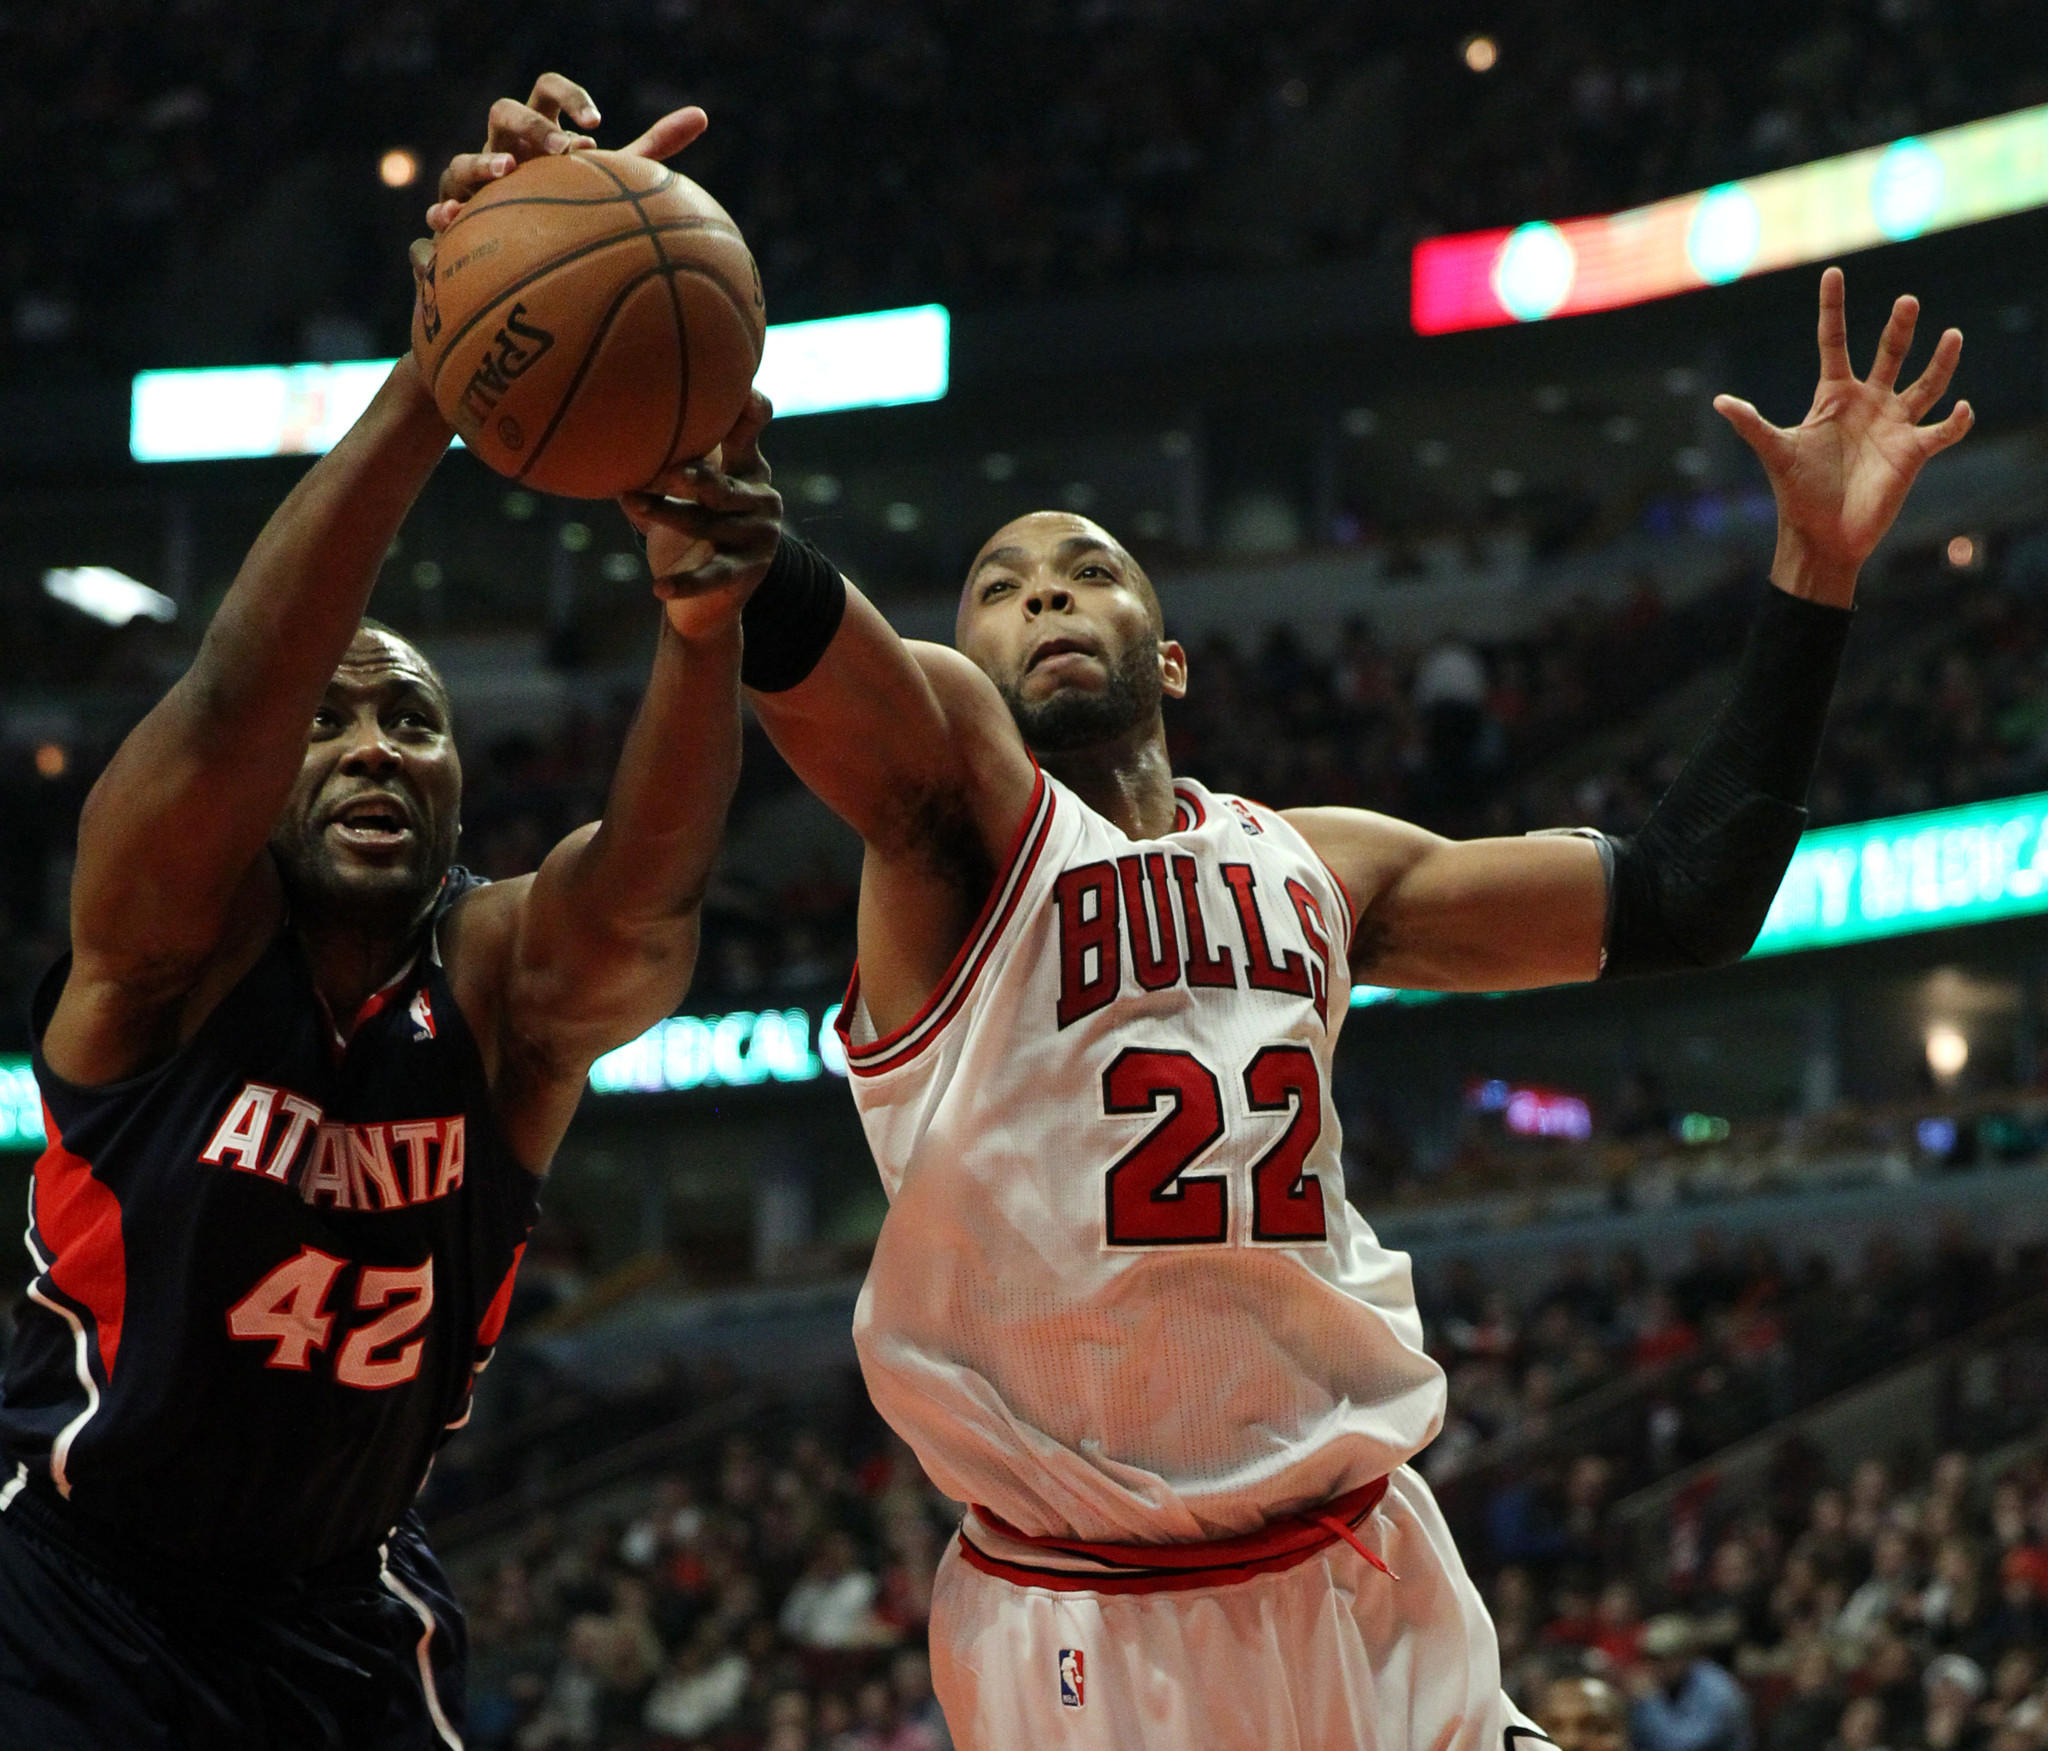 The Hawks' Elton Brand and Taj Gibson battle for a rebound in the first half at the United Center.